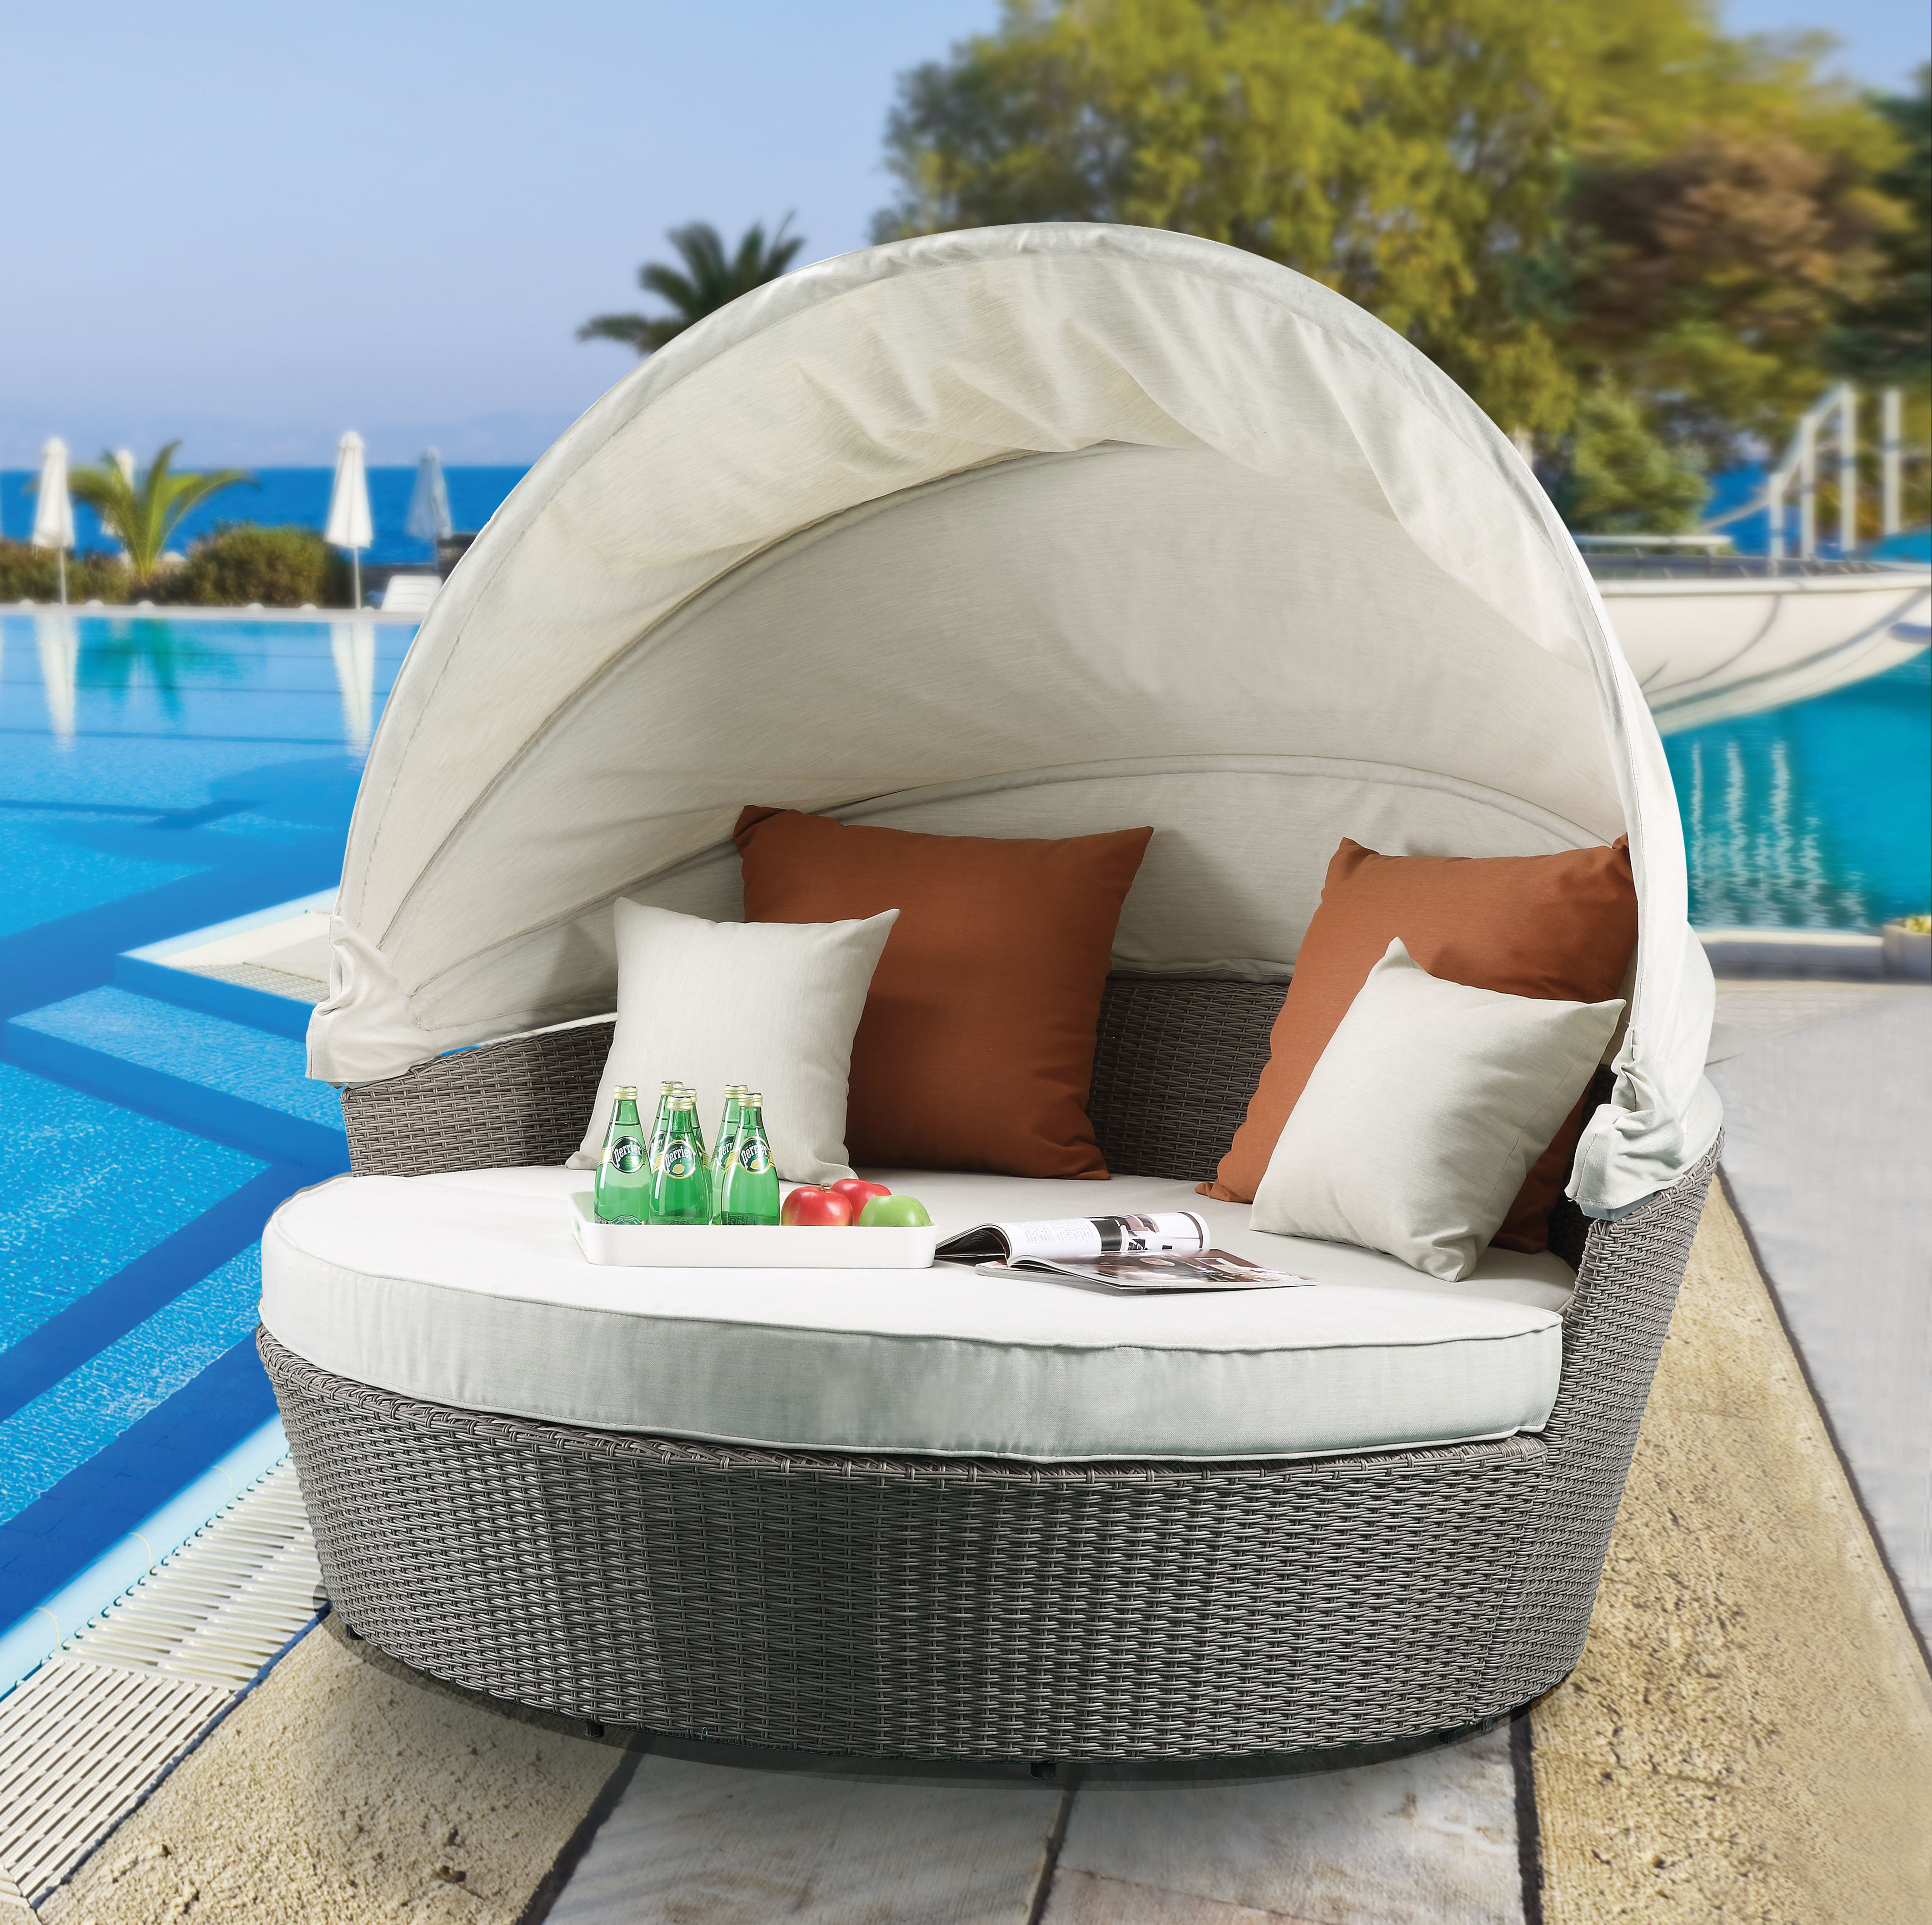 Lammers Outdoor Wicker Daybeds With Cushions Intended For Best And Newest Winebarger Patio Daybed With Cushions (View 8 of 20)